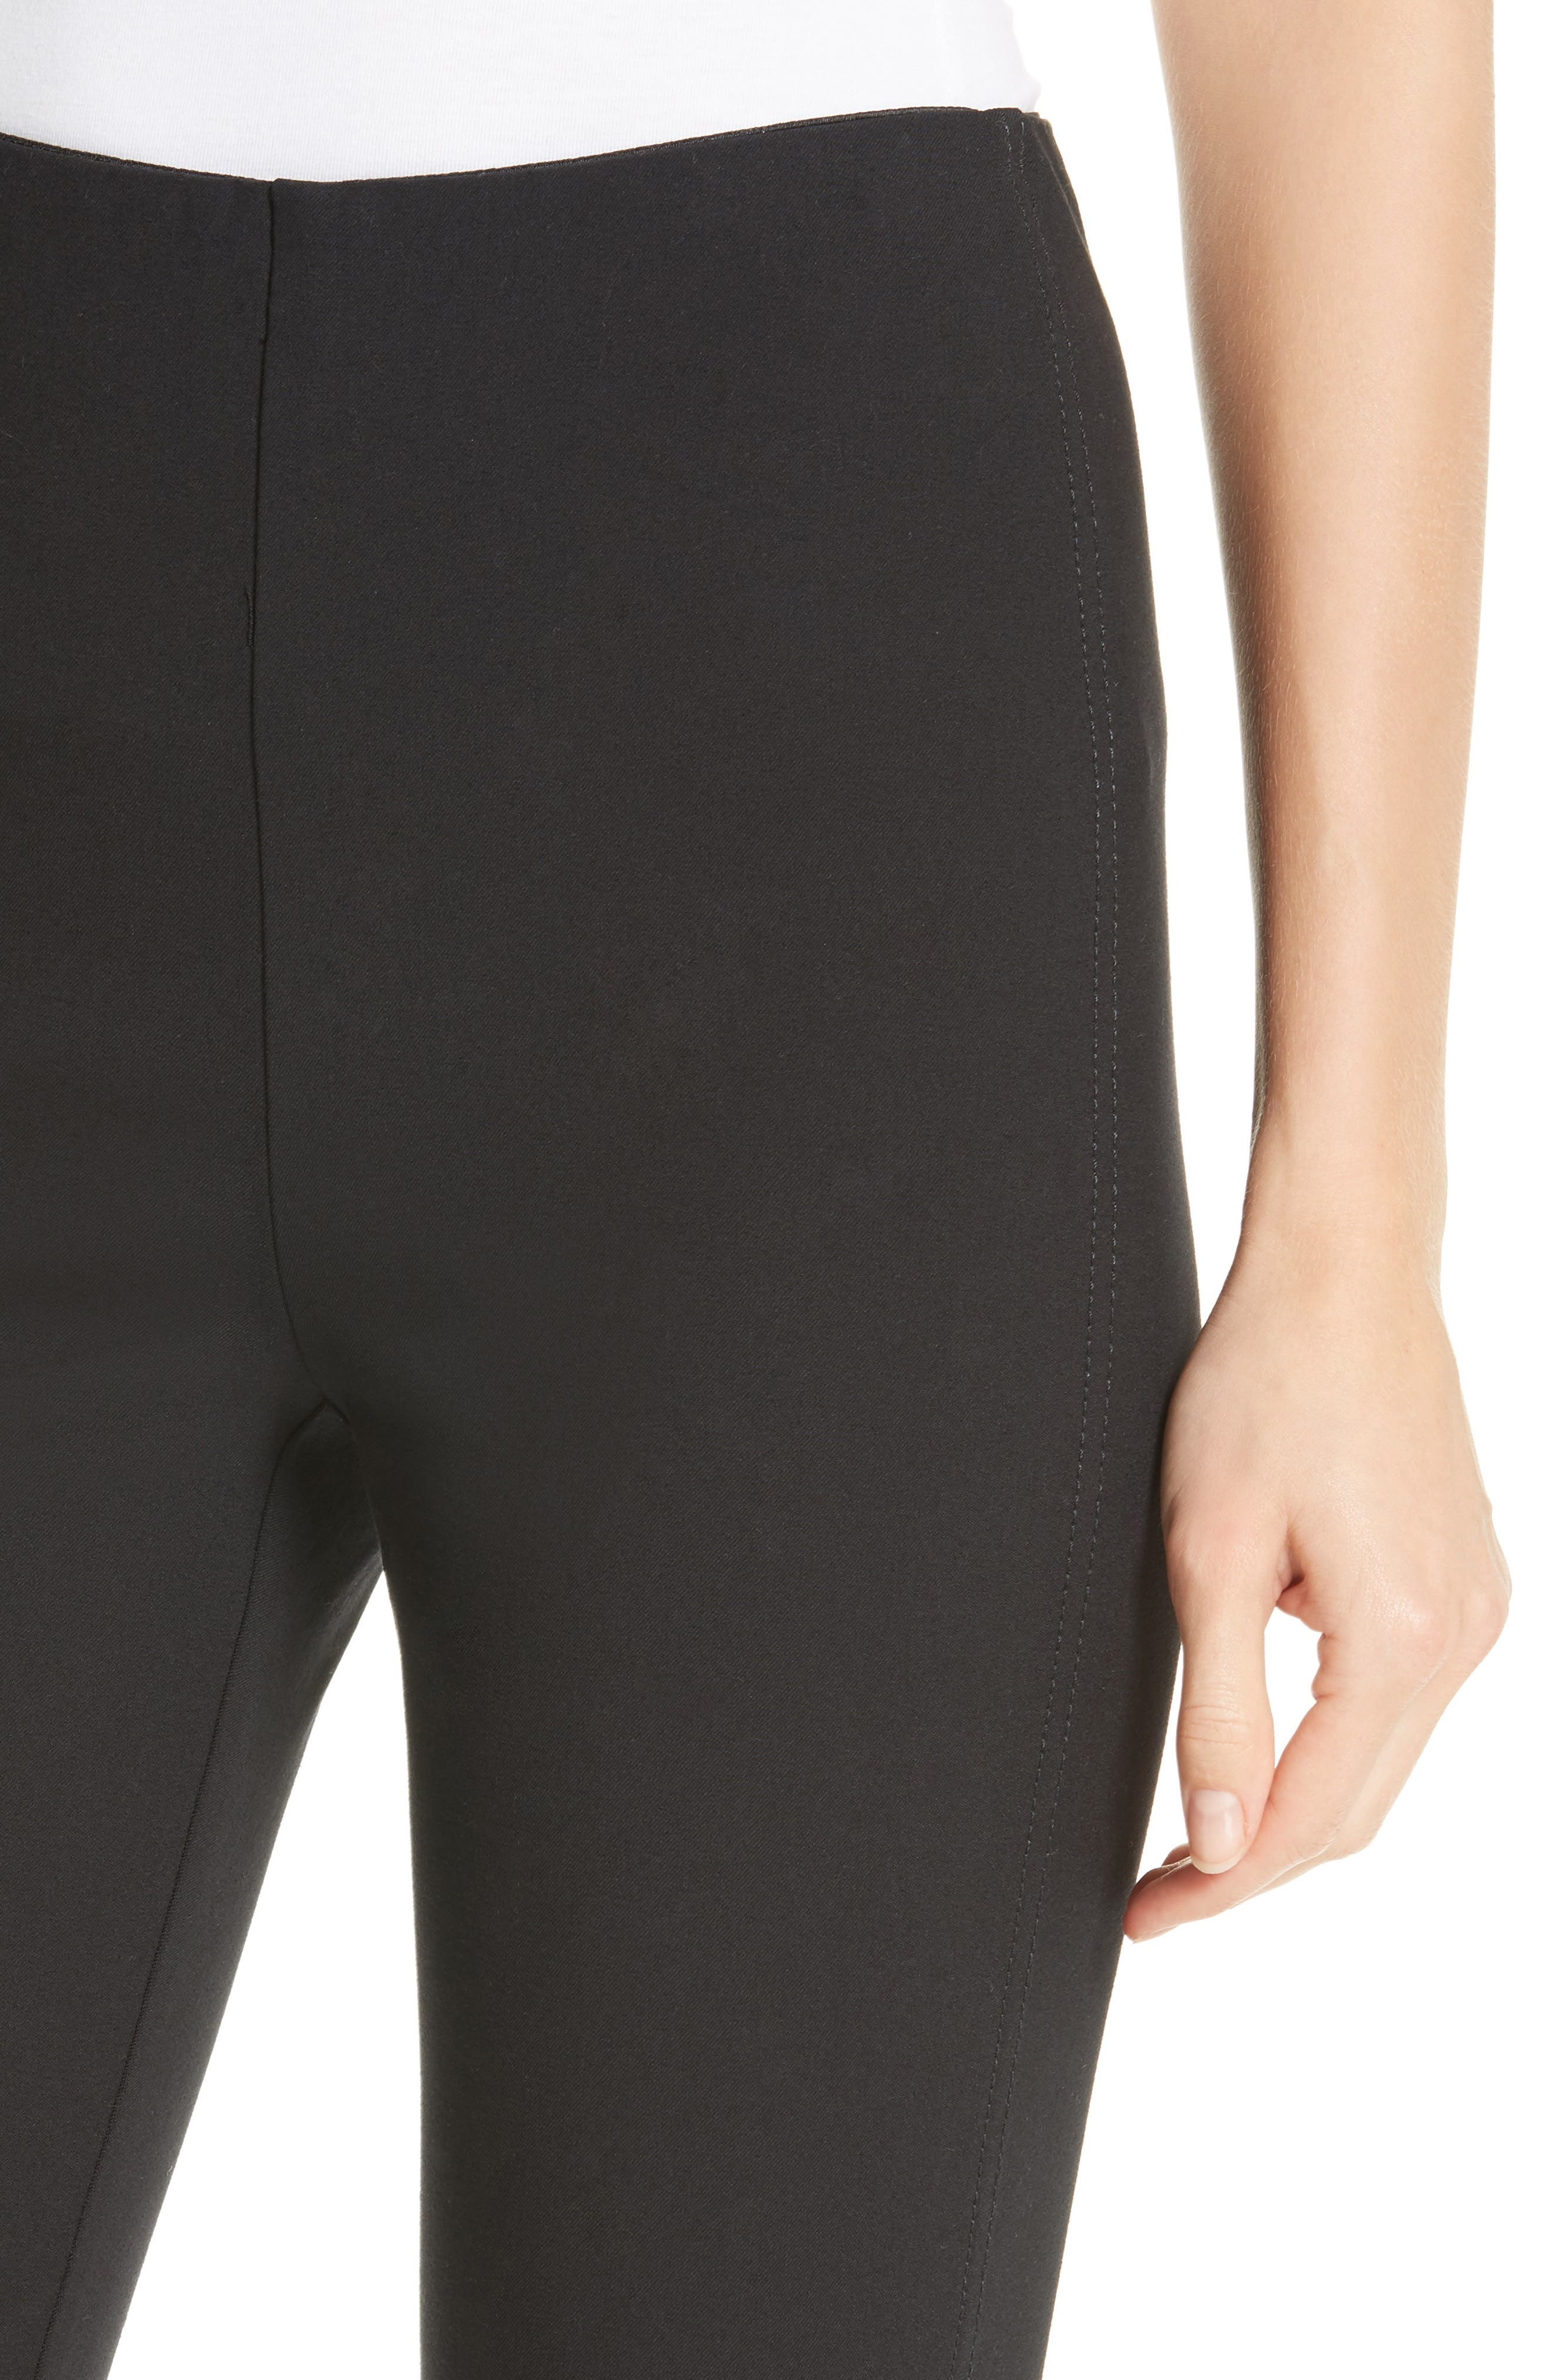 DEREK LAM 10 CROSBY,                             Sullivan Leggings,                             Alternate thumbnail 4, color,                             BLACK